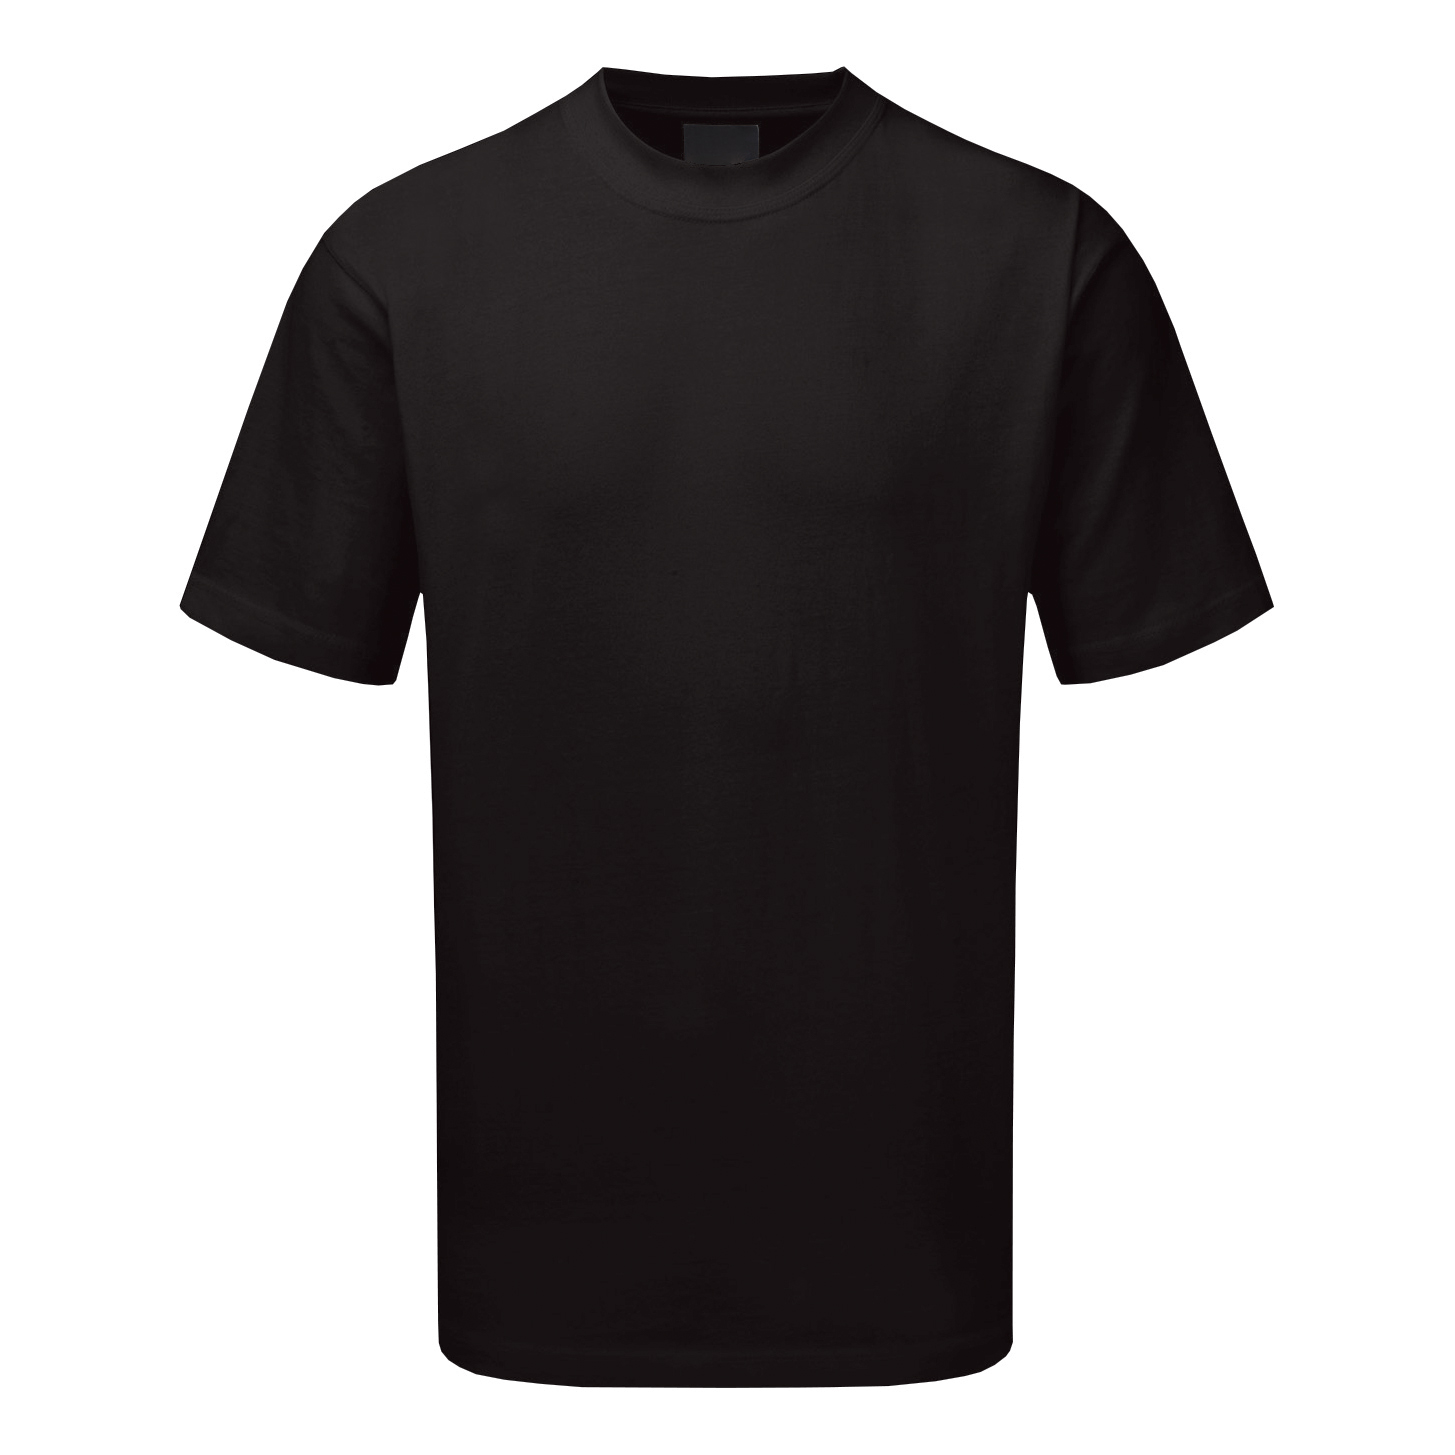 Premium T-Shirt Polycotton Triple Stitched Small Black Ref CLCTSHWBLS *Up to 3 Day Leadtime*